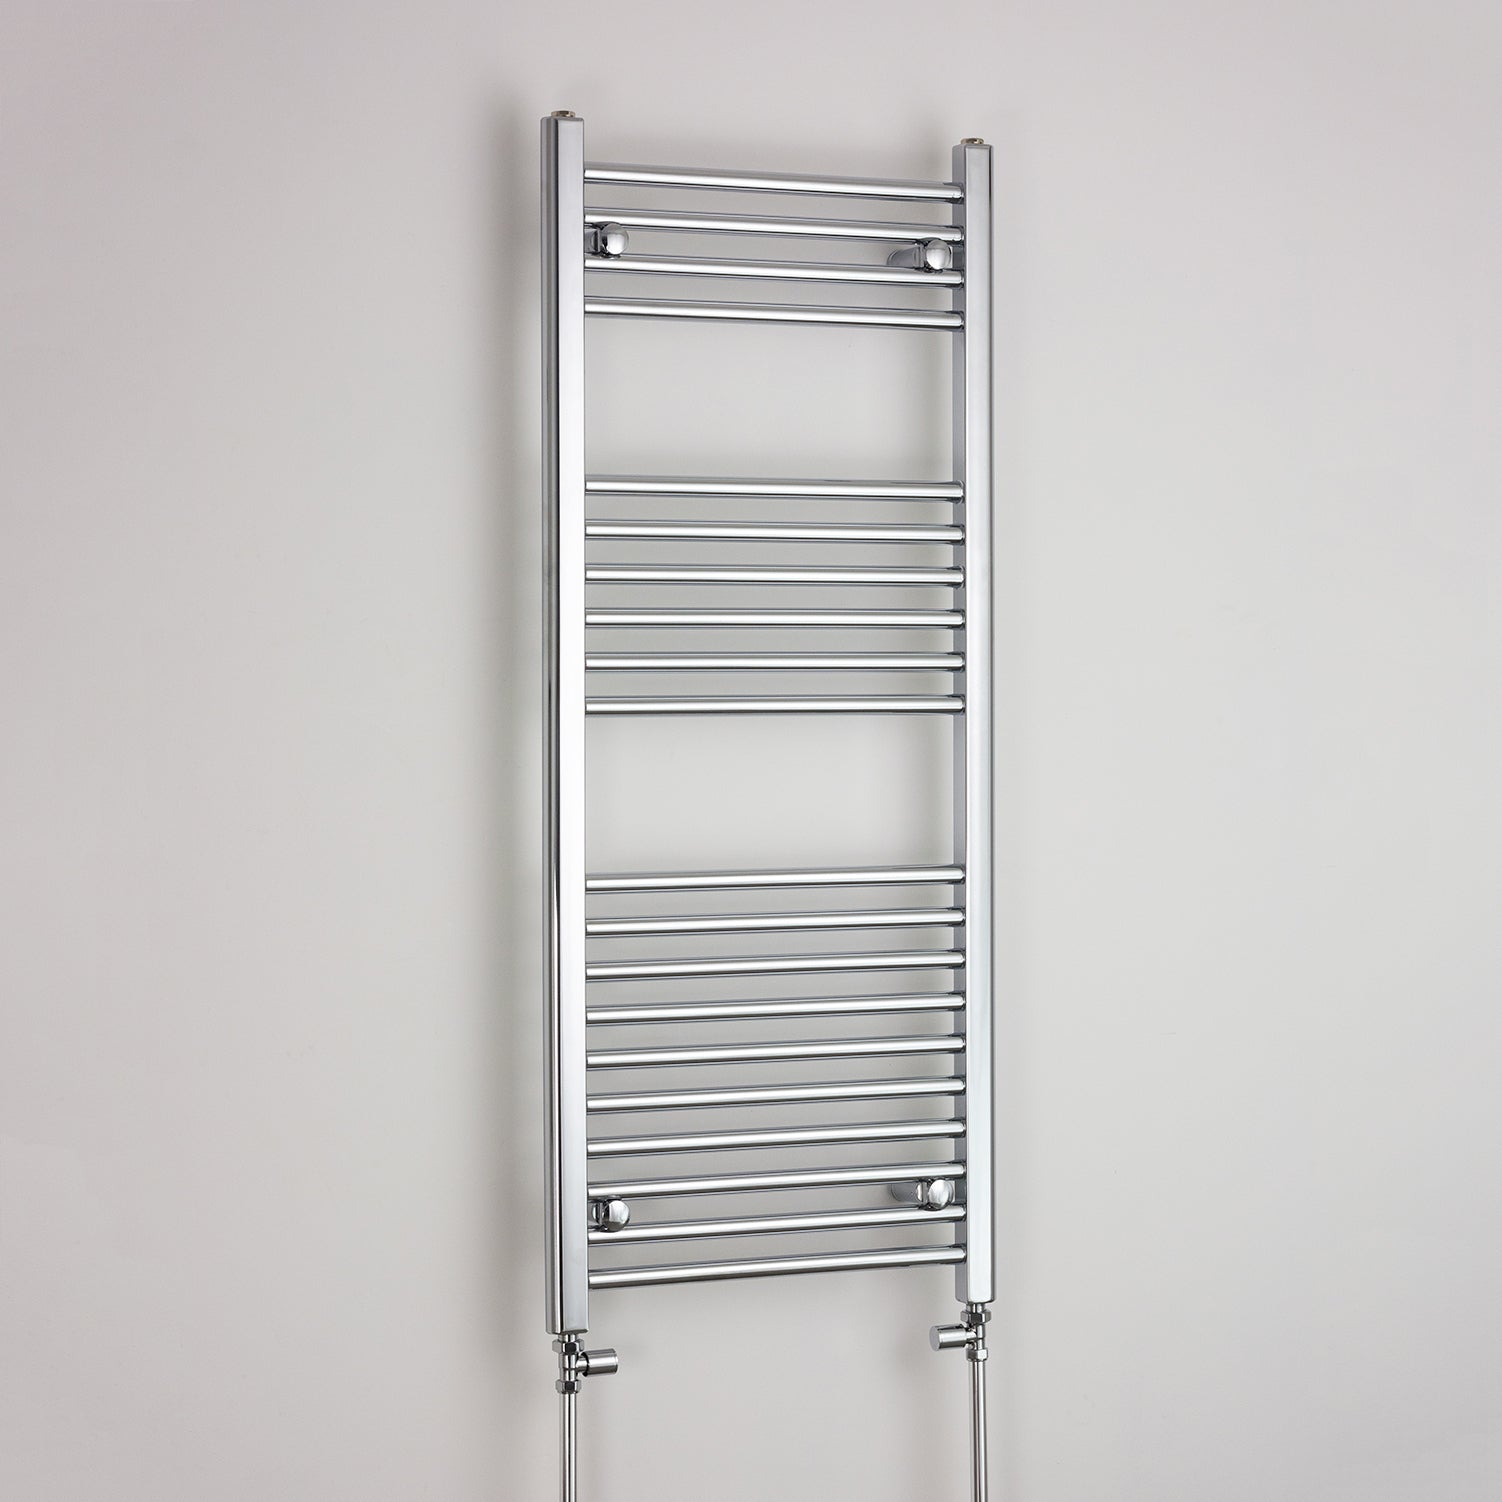 500mm Wide 1200mm High Curved Chrome Heated Towel Rail Radiator HTR,With Straight Valve